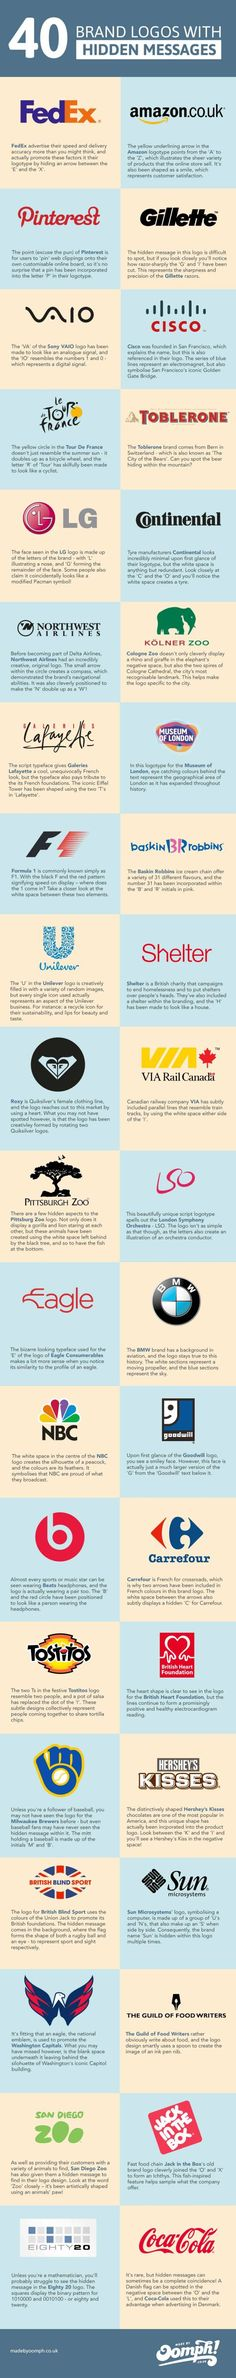 The hidden messages in some brand logos